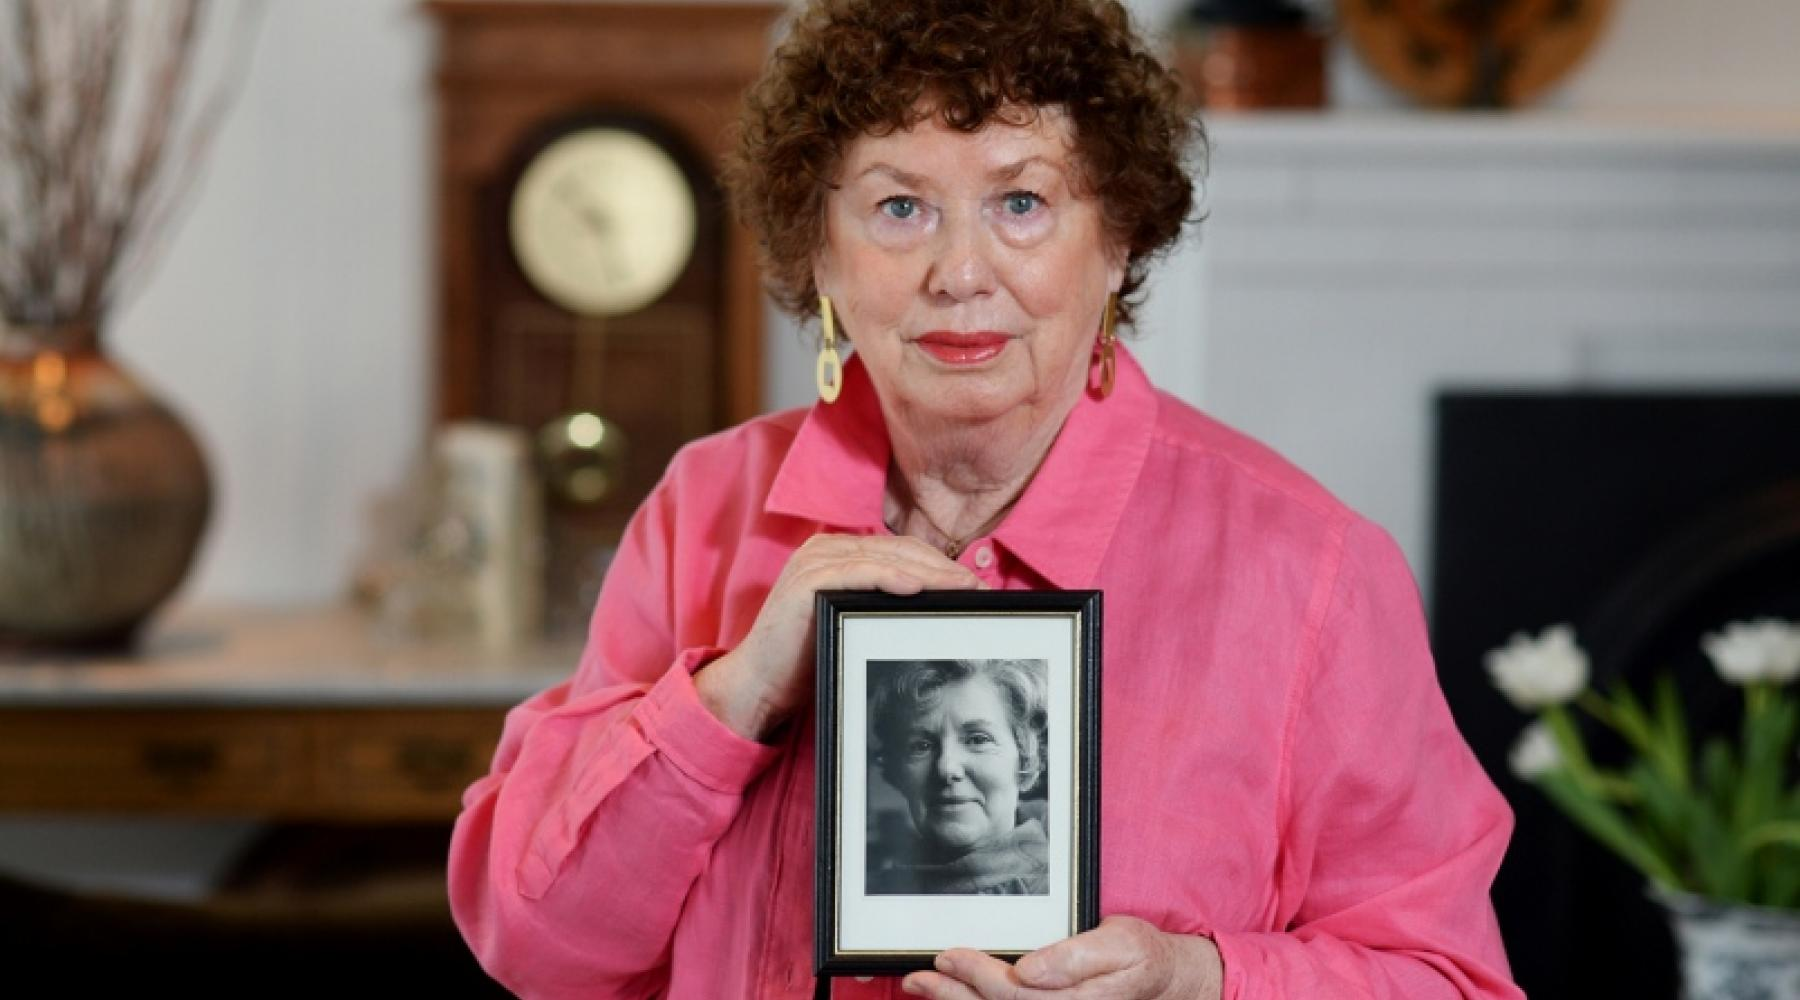 Gale Tyler holding a photo of her mother, Jane Tyler (Photo: Jennifer Gauthier)